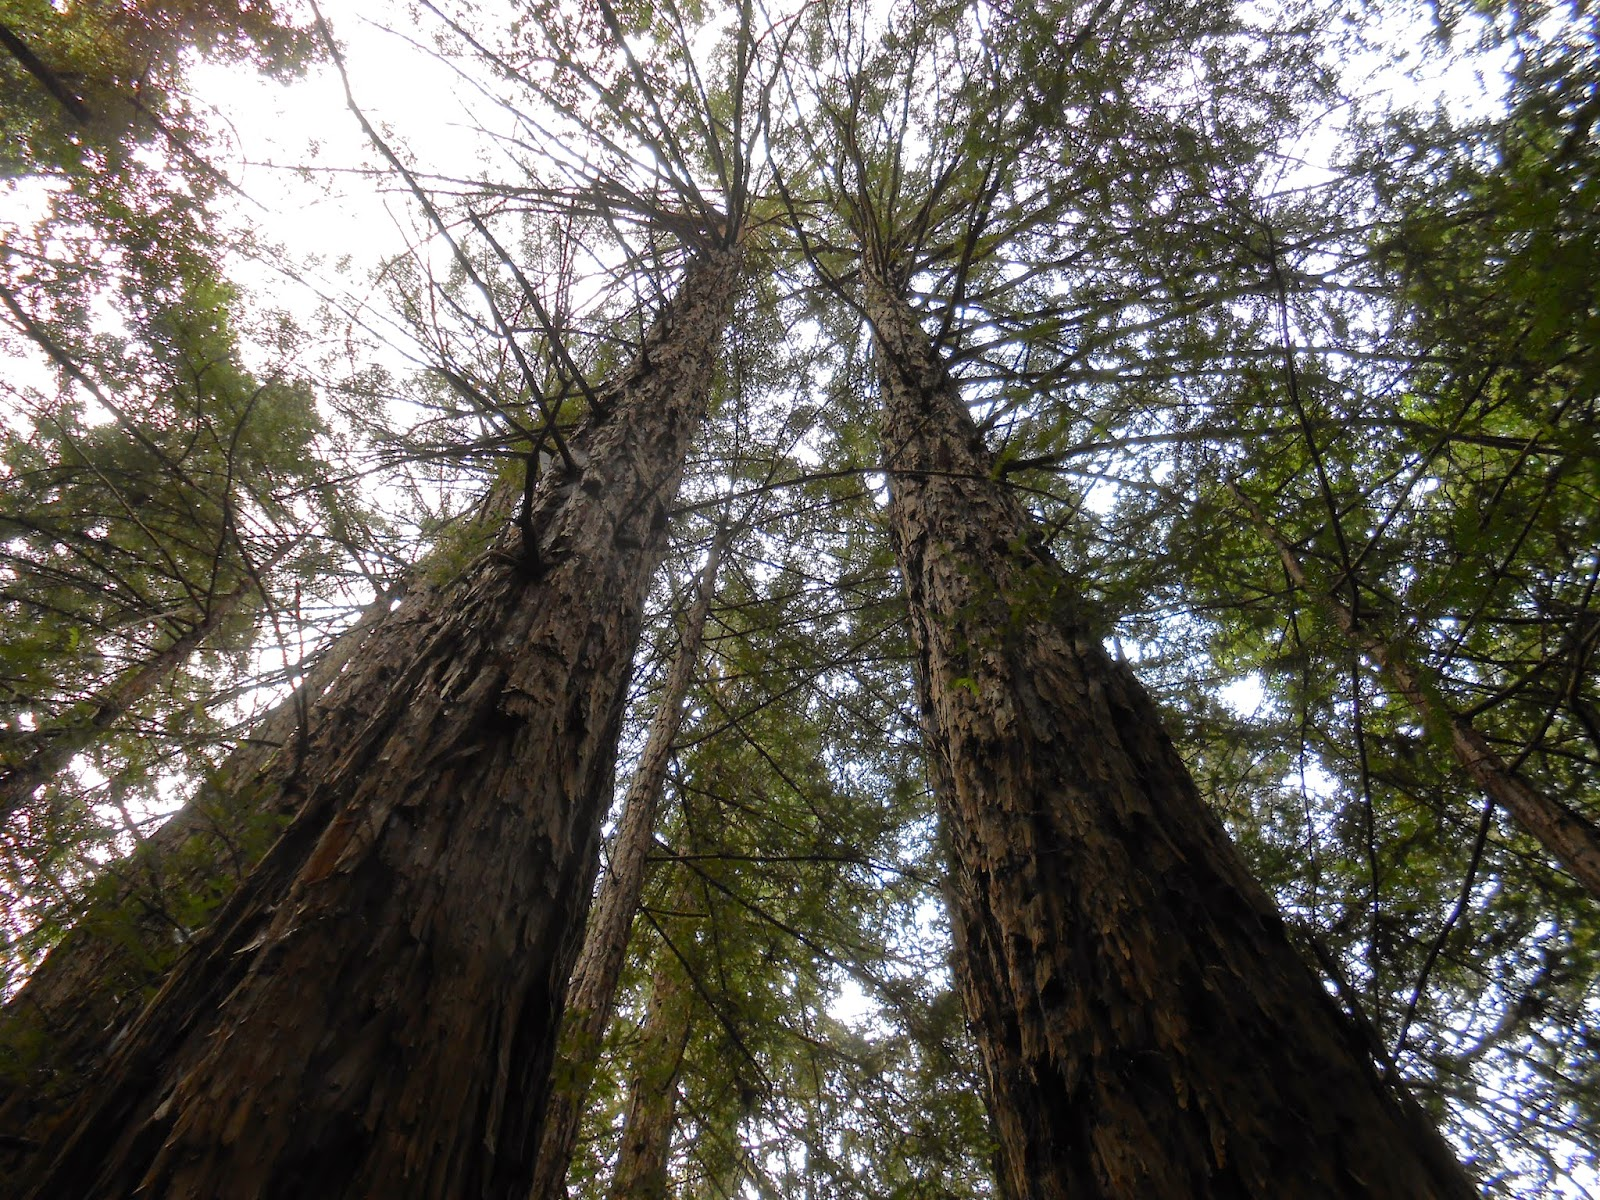 spiritual union, spiritual awakening, spirituality, image, nature photo, redwoods trees photo,